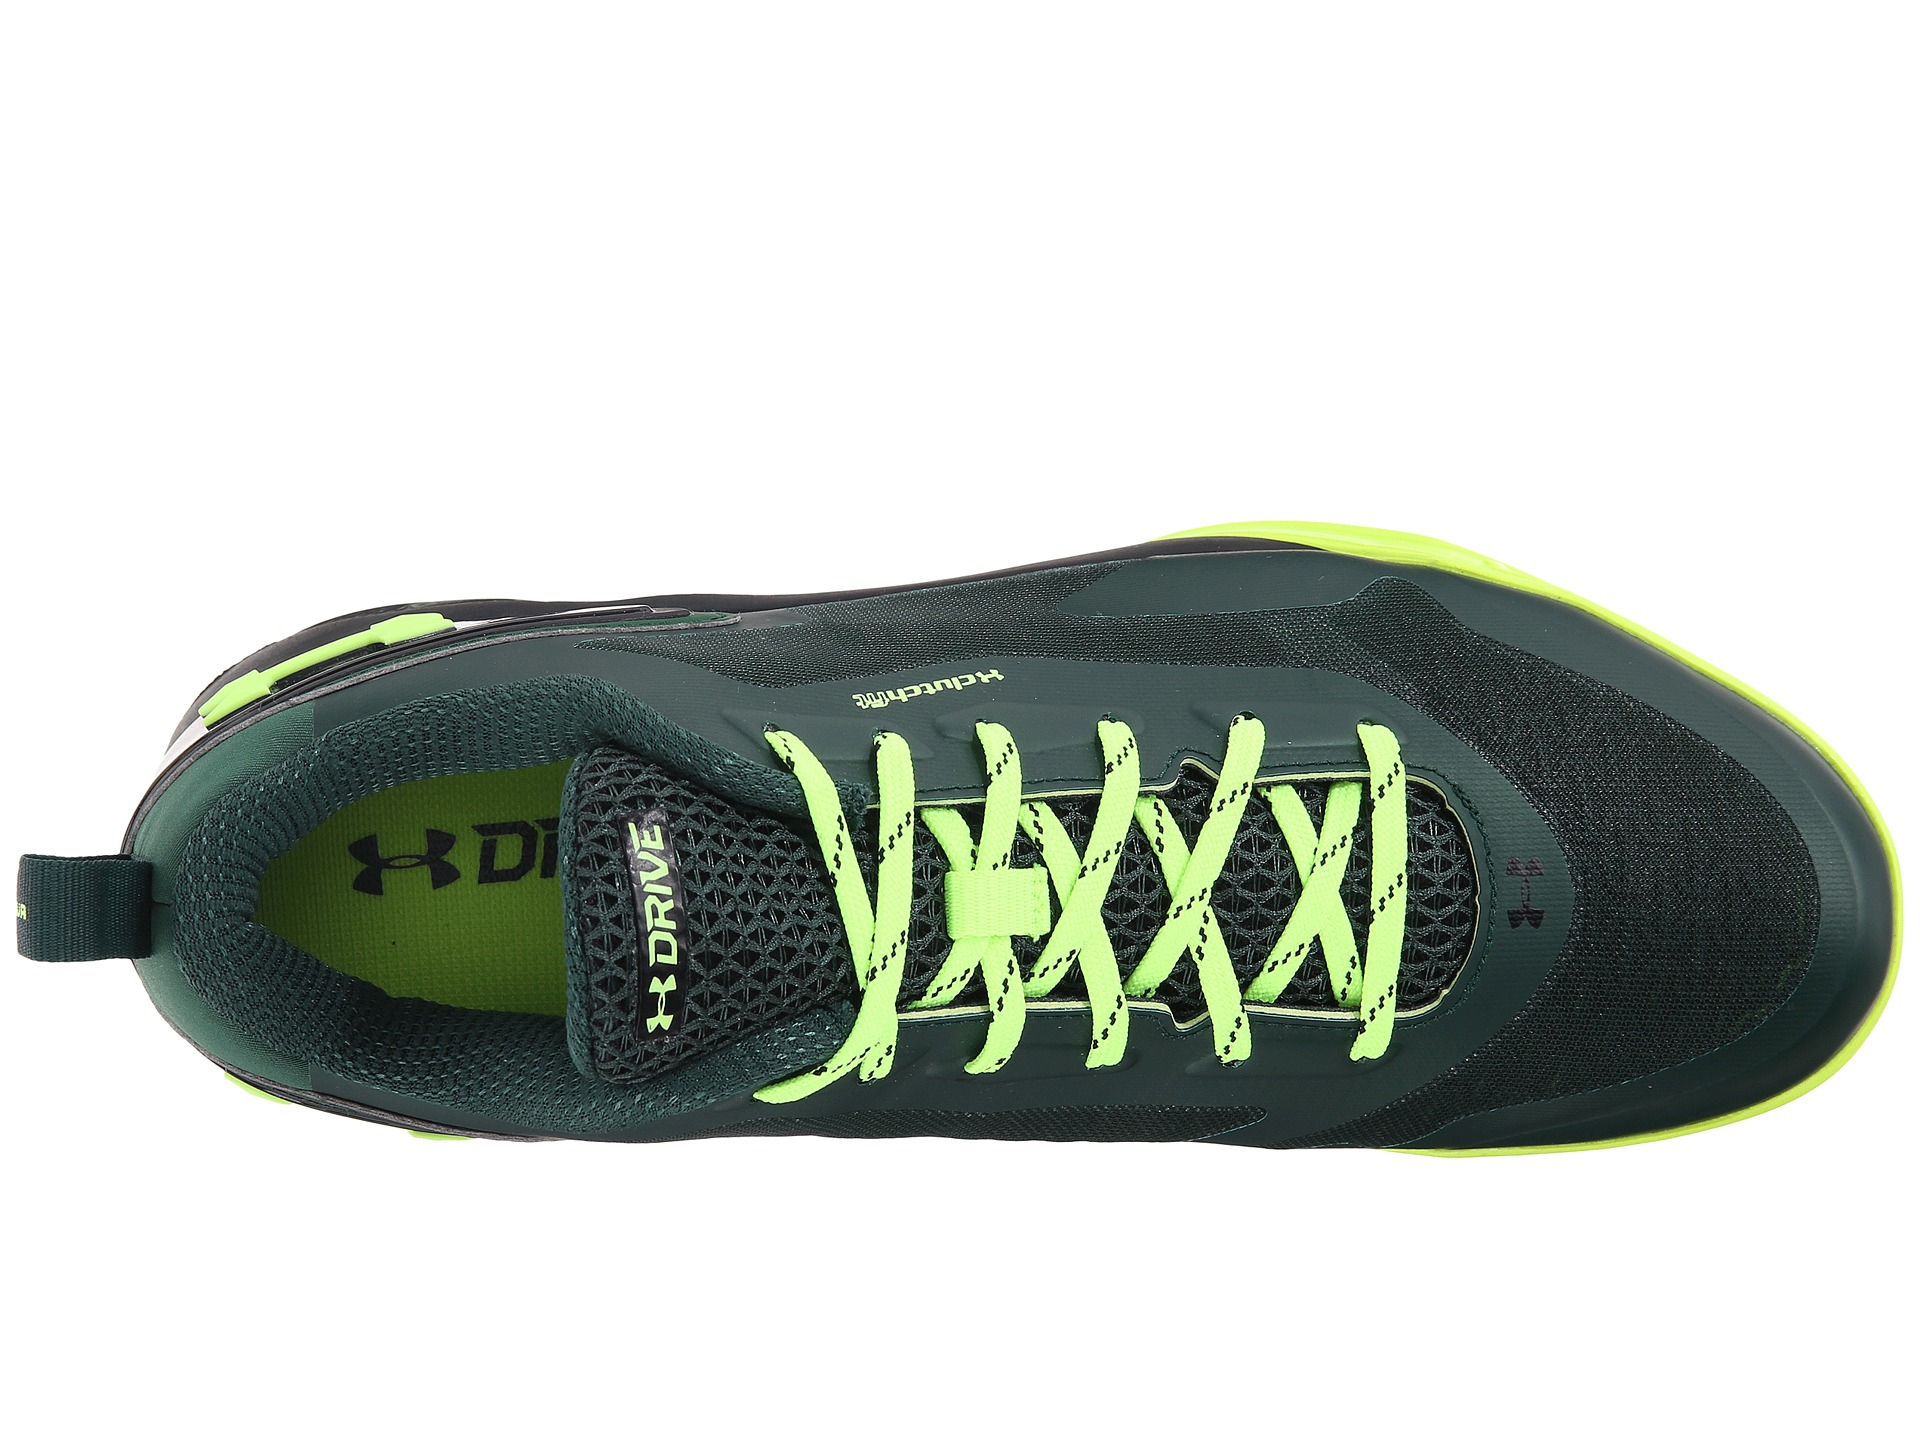 7dfc4307955 ... buy lyst under armour ua clutchfit drive 2 low in green for men f8542  c96af ...